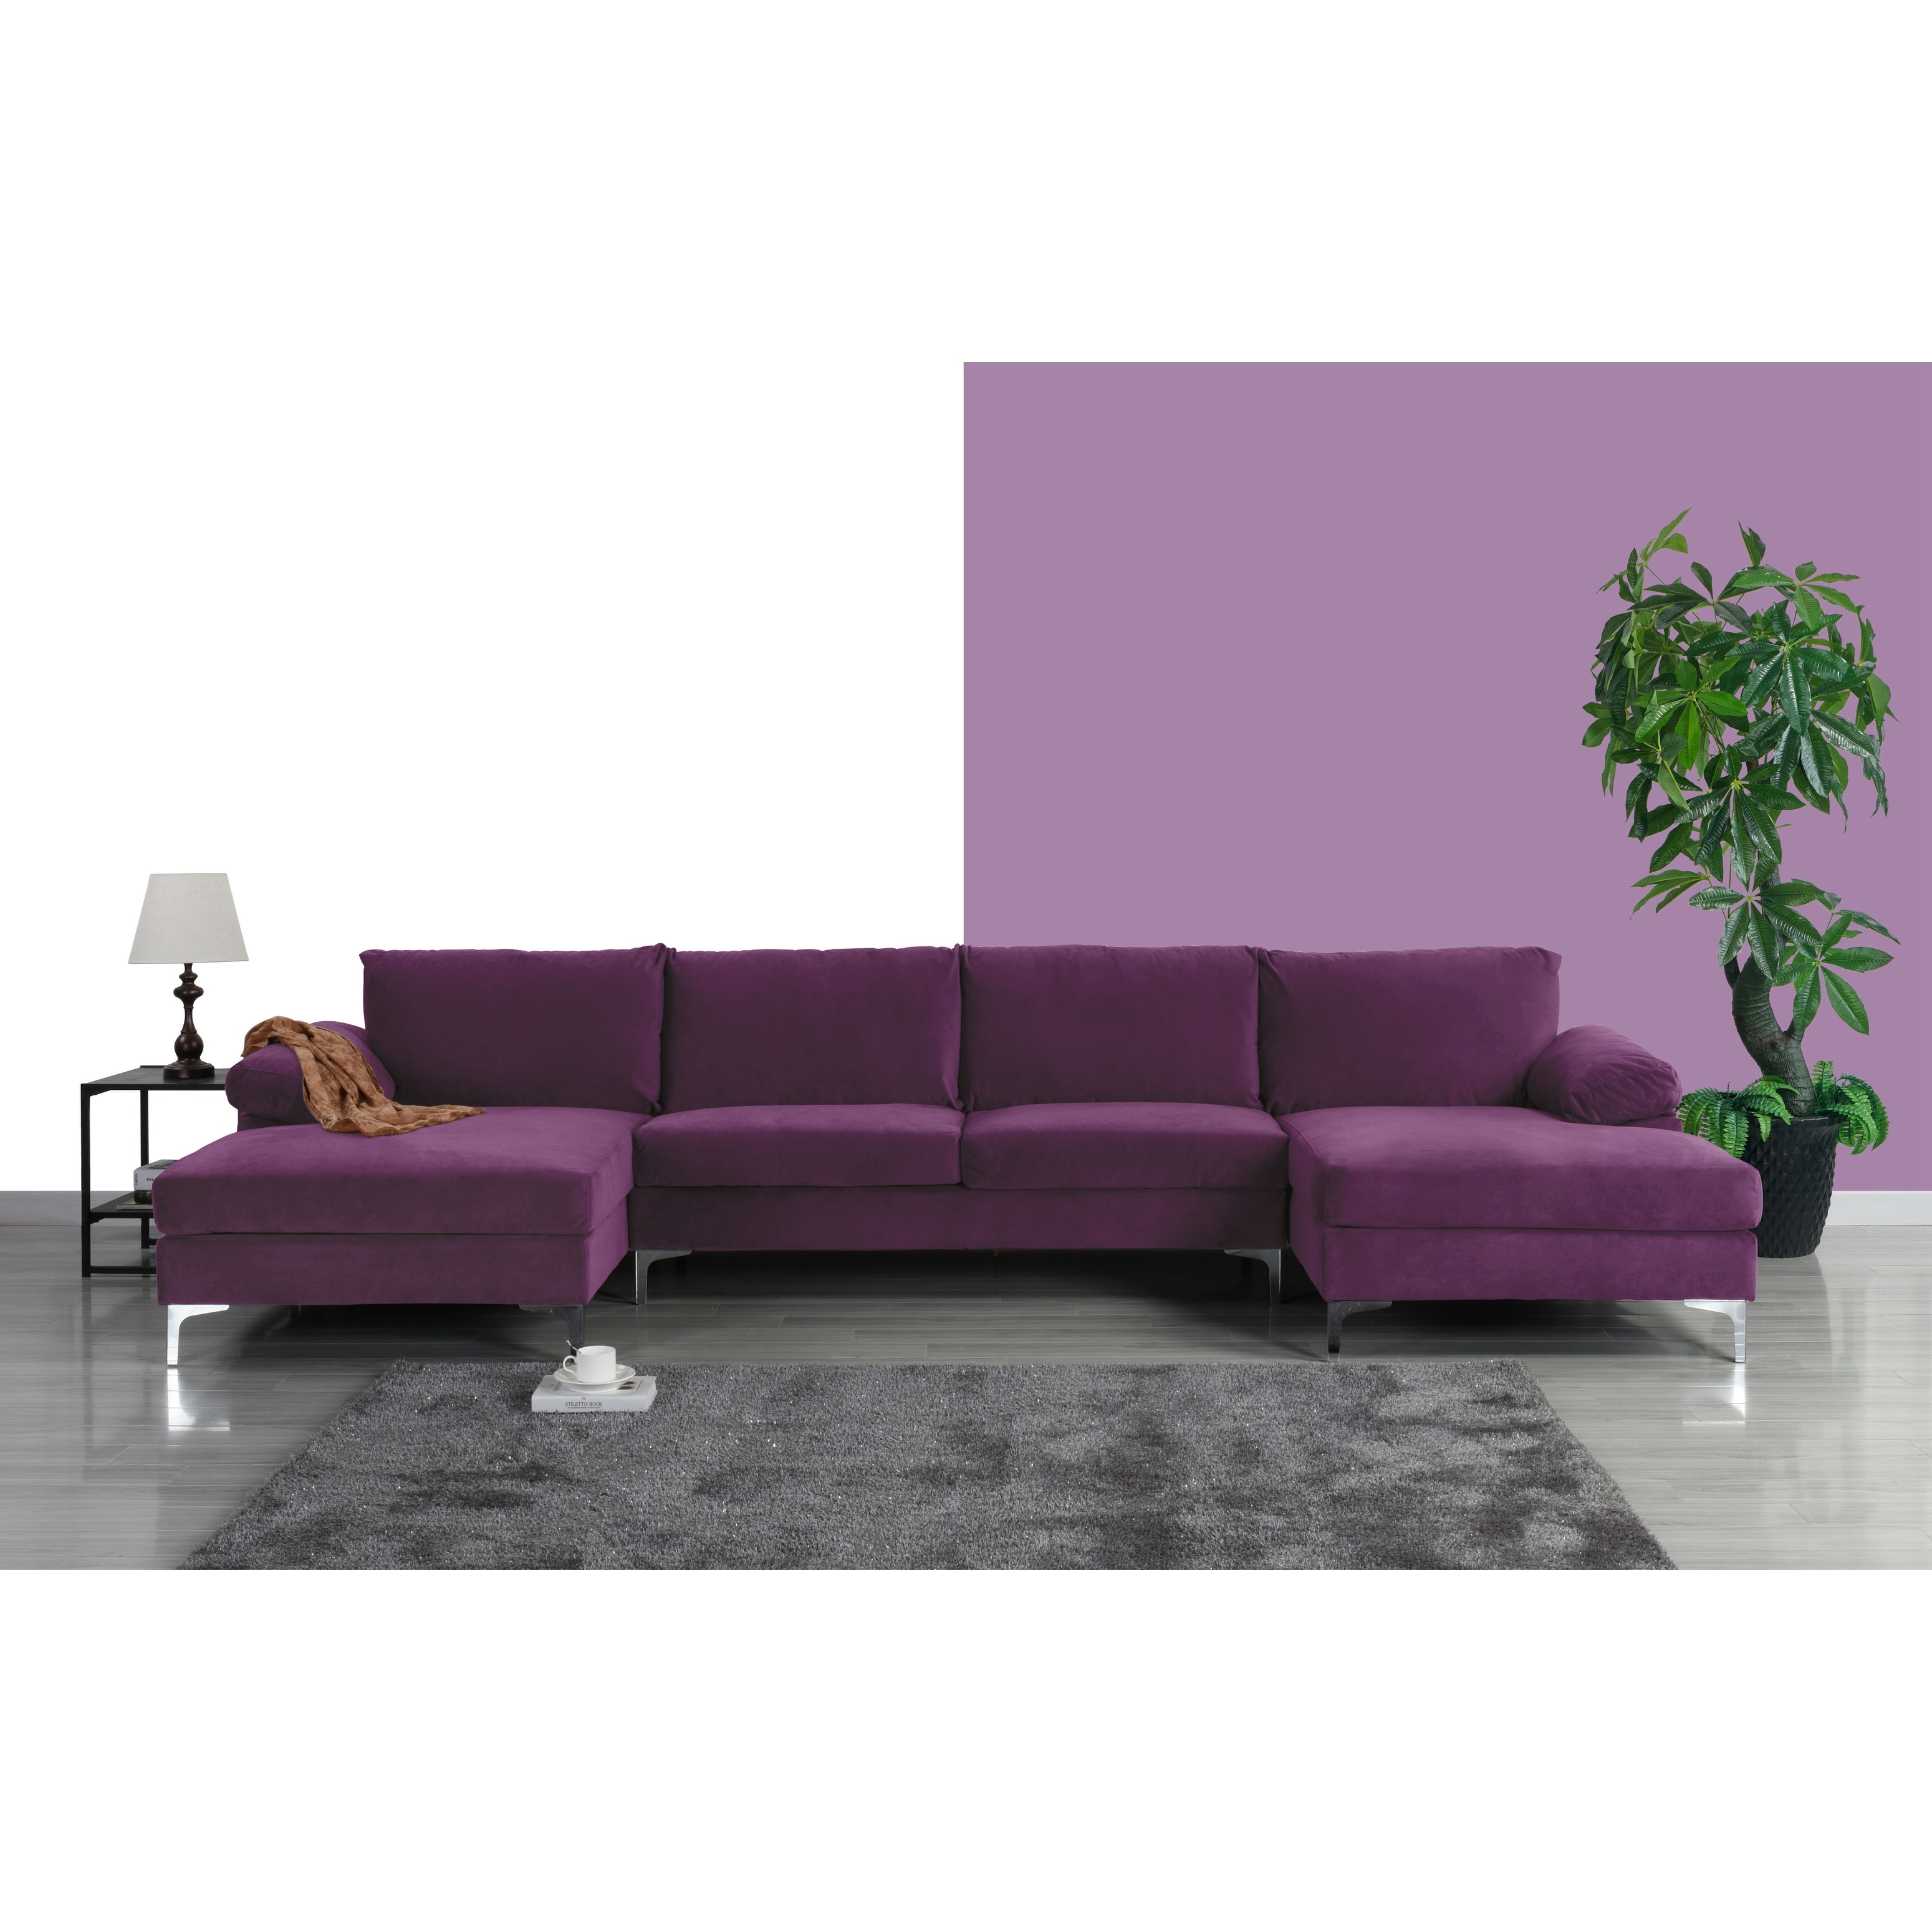 Modern Xl Velvet Upholstery U Shaped Sectional Sofa Overstock 28156967